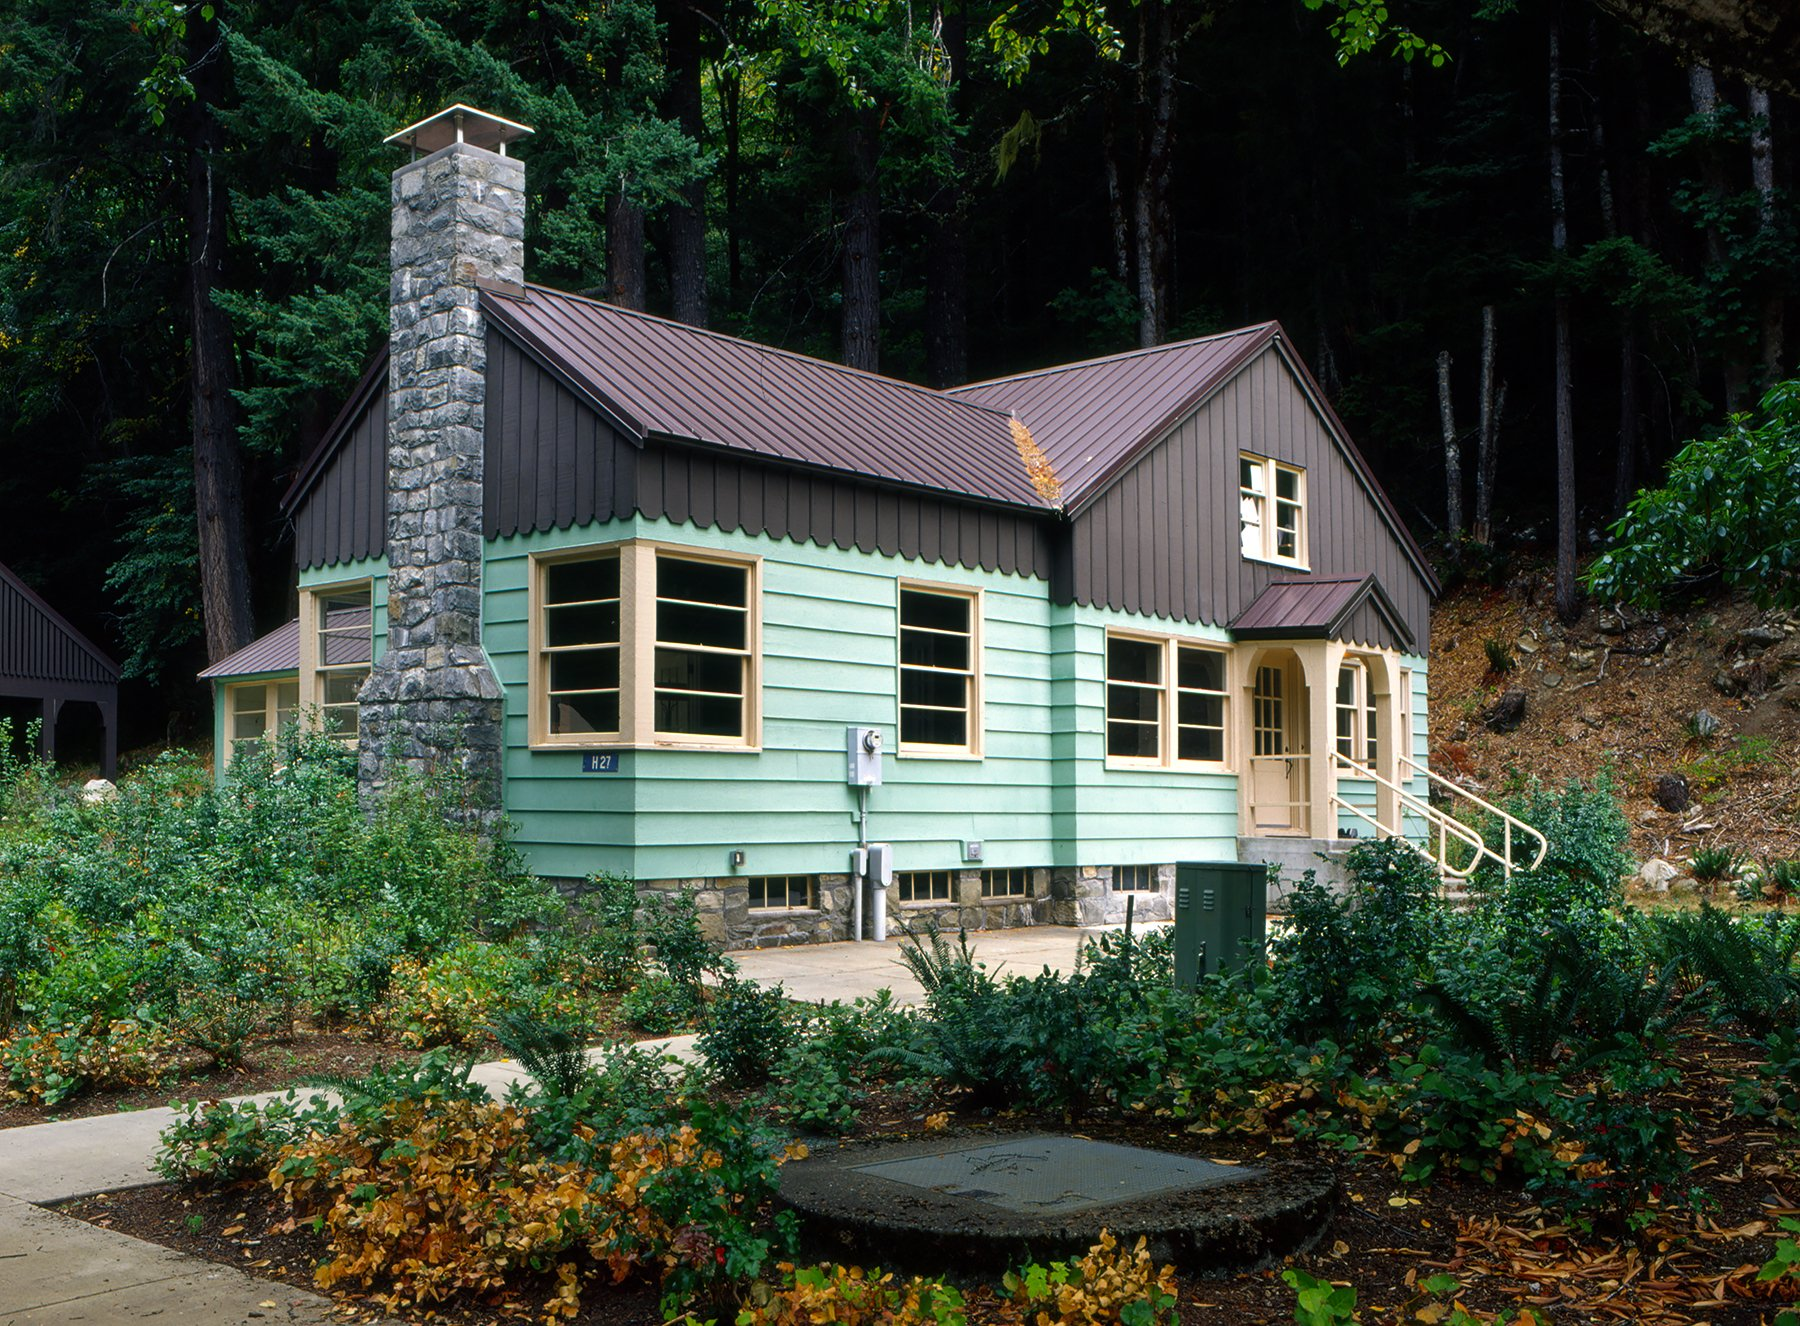 Home of J.D. Ross, father of Seattle City Light, along the Upper Skagit River, North Cascades, Washington (2017)